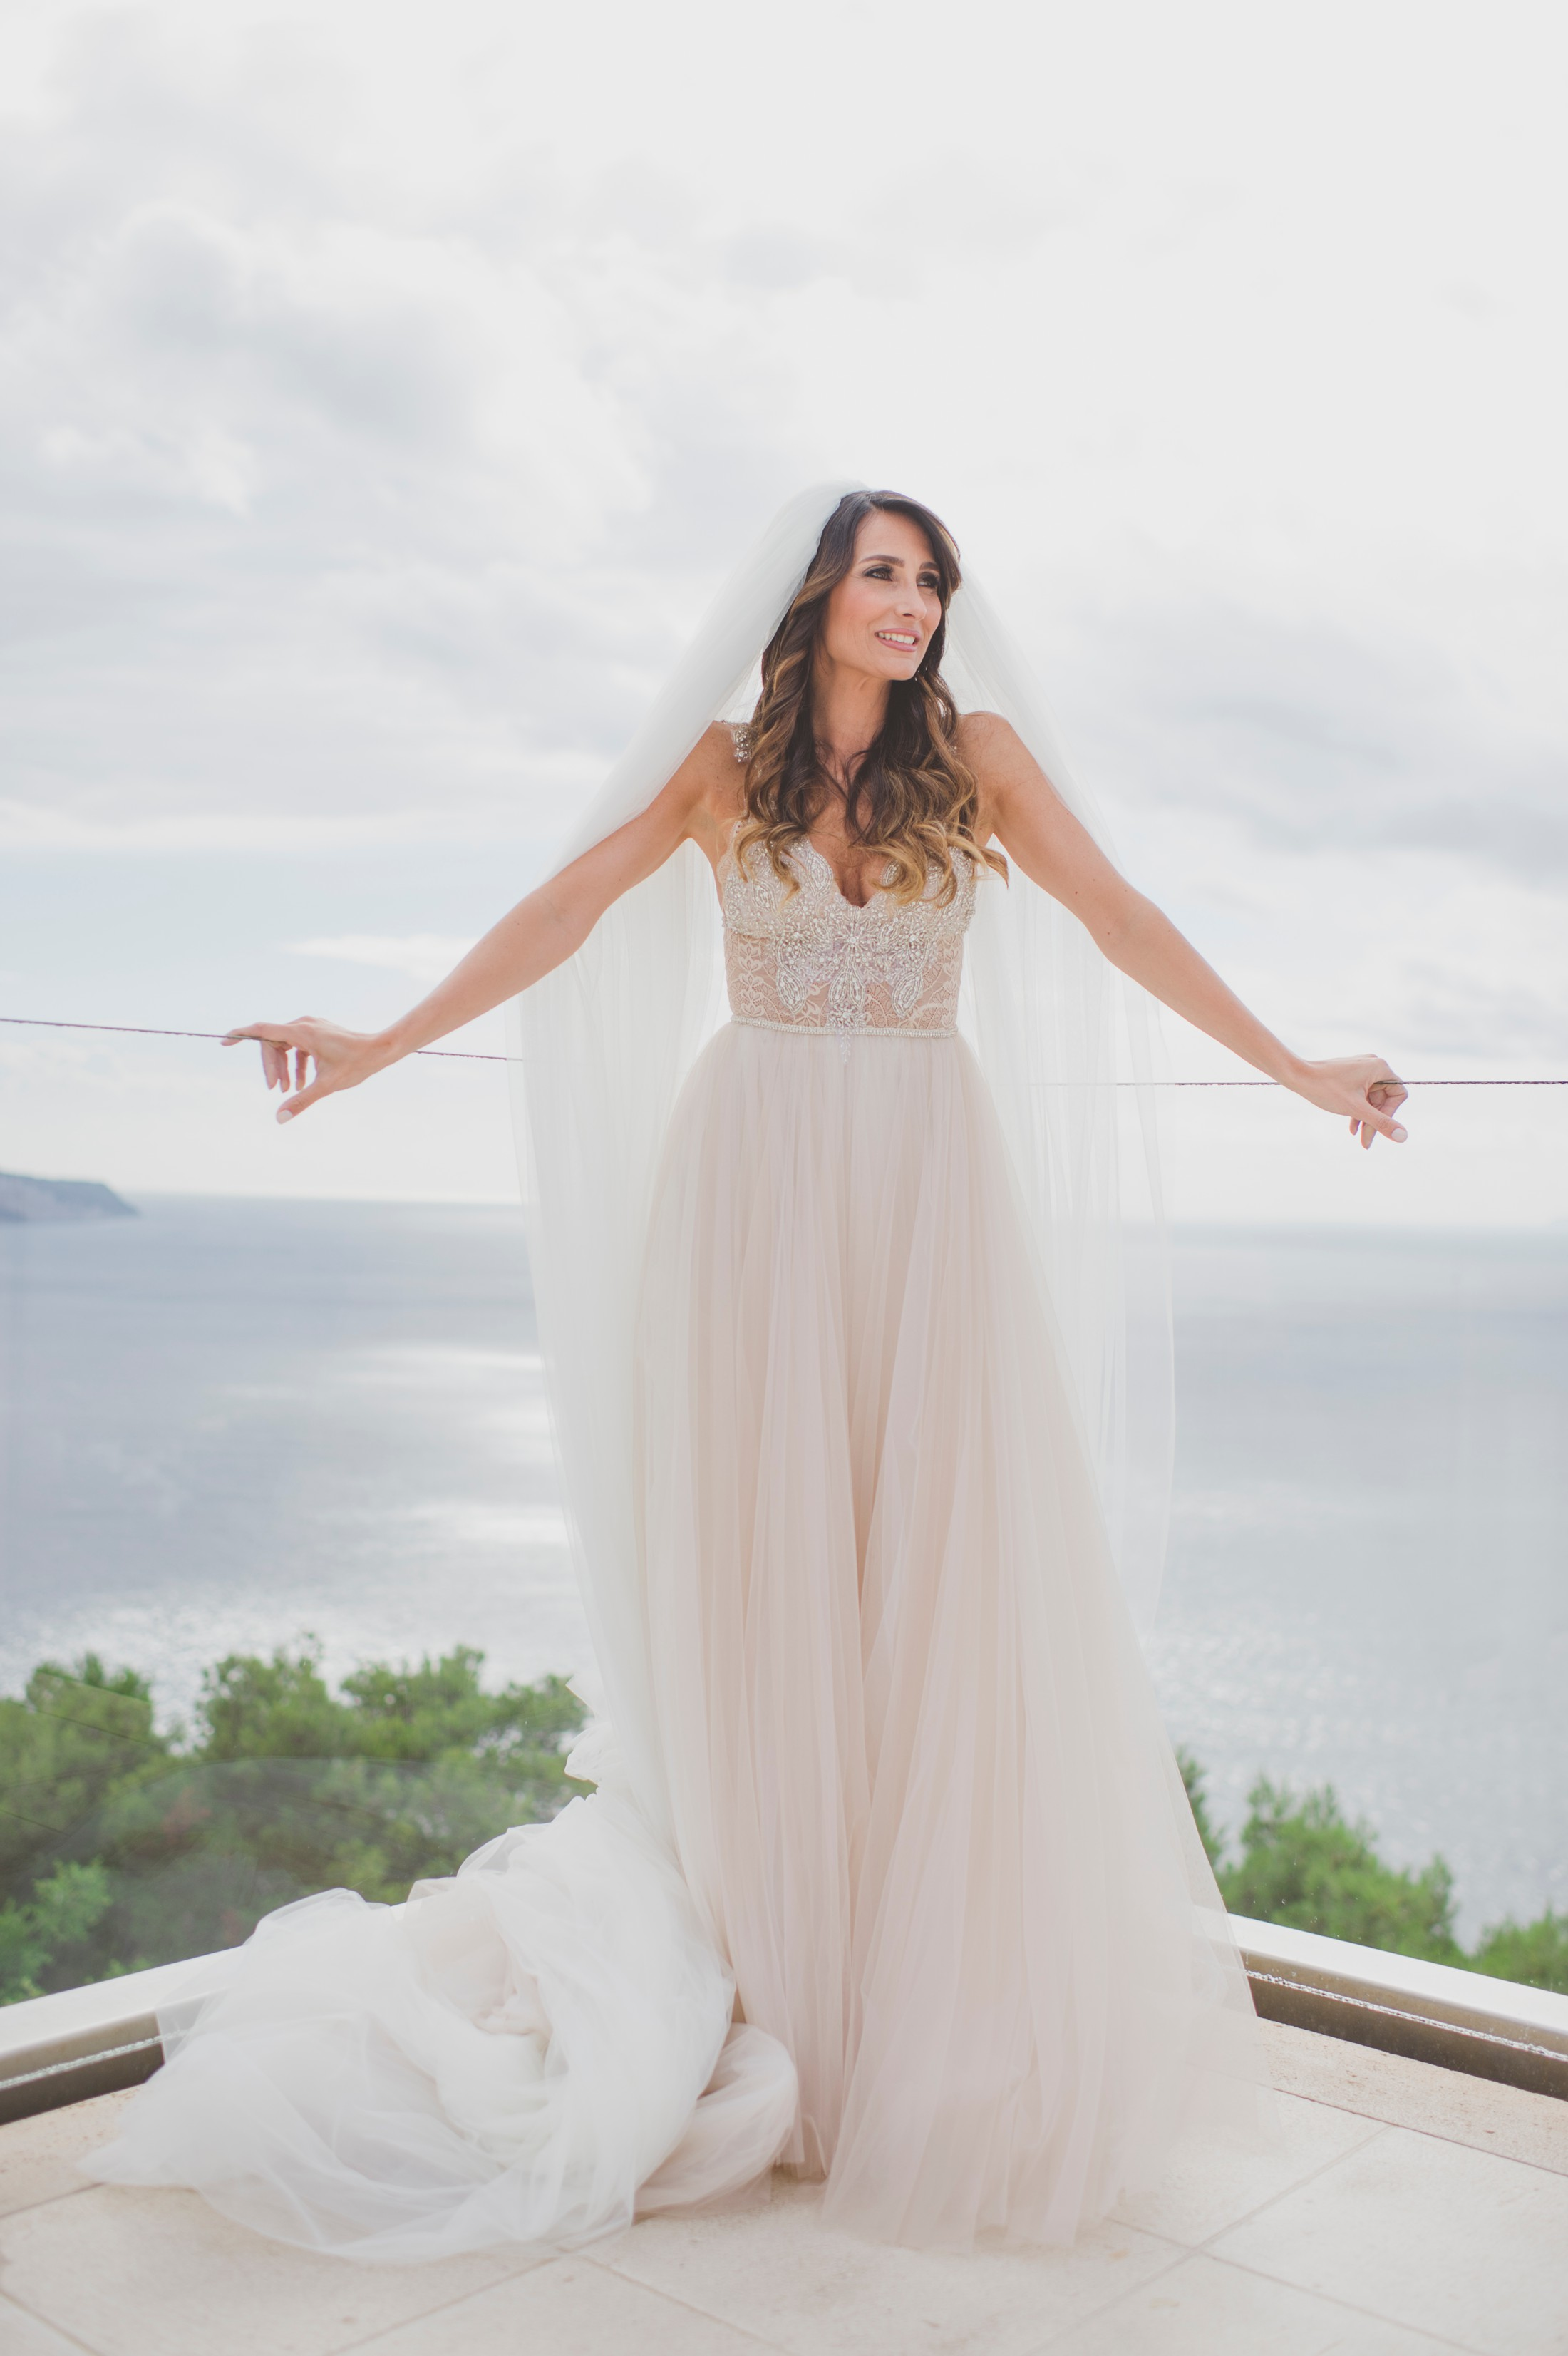 sorrento wedding bride's portrait on the terrace with the sea as background